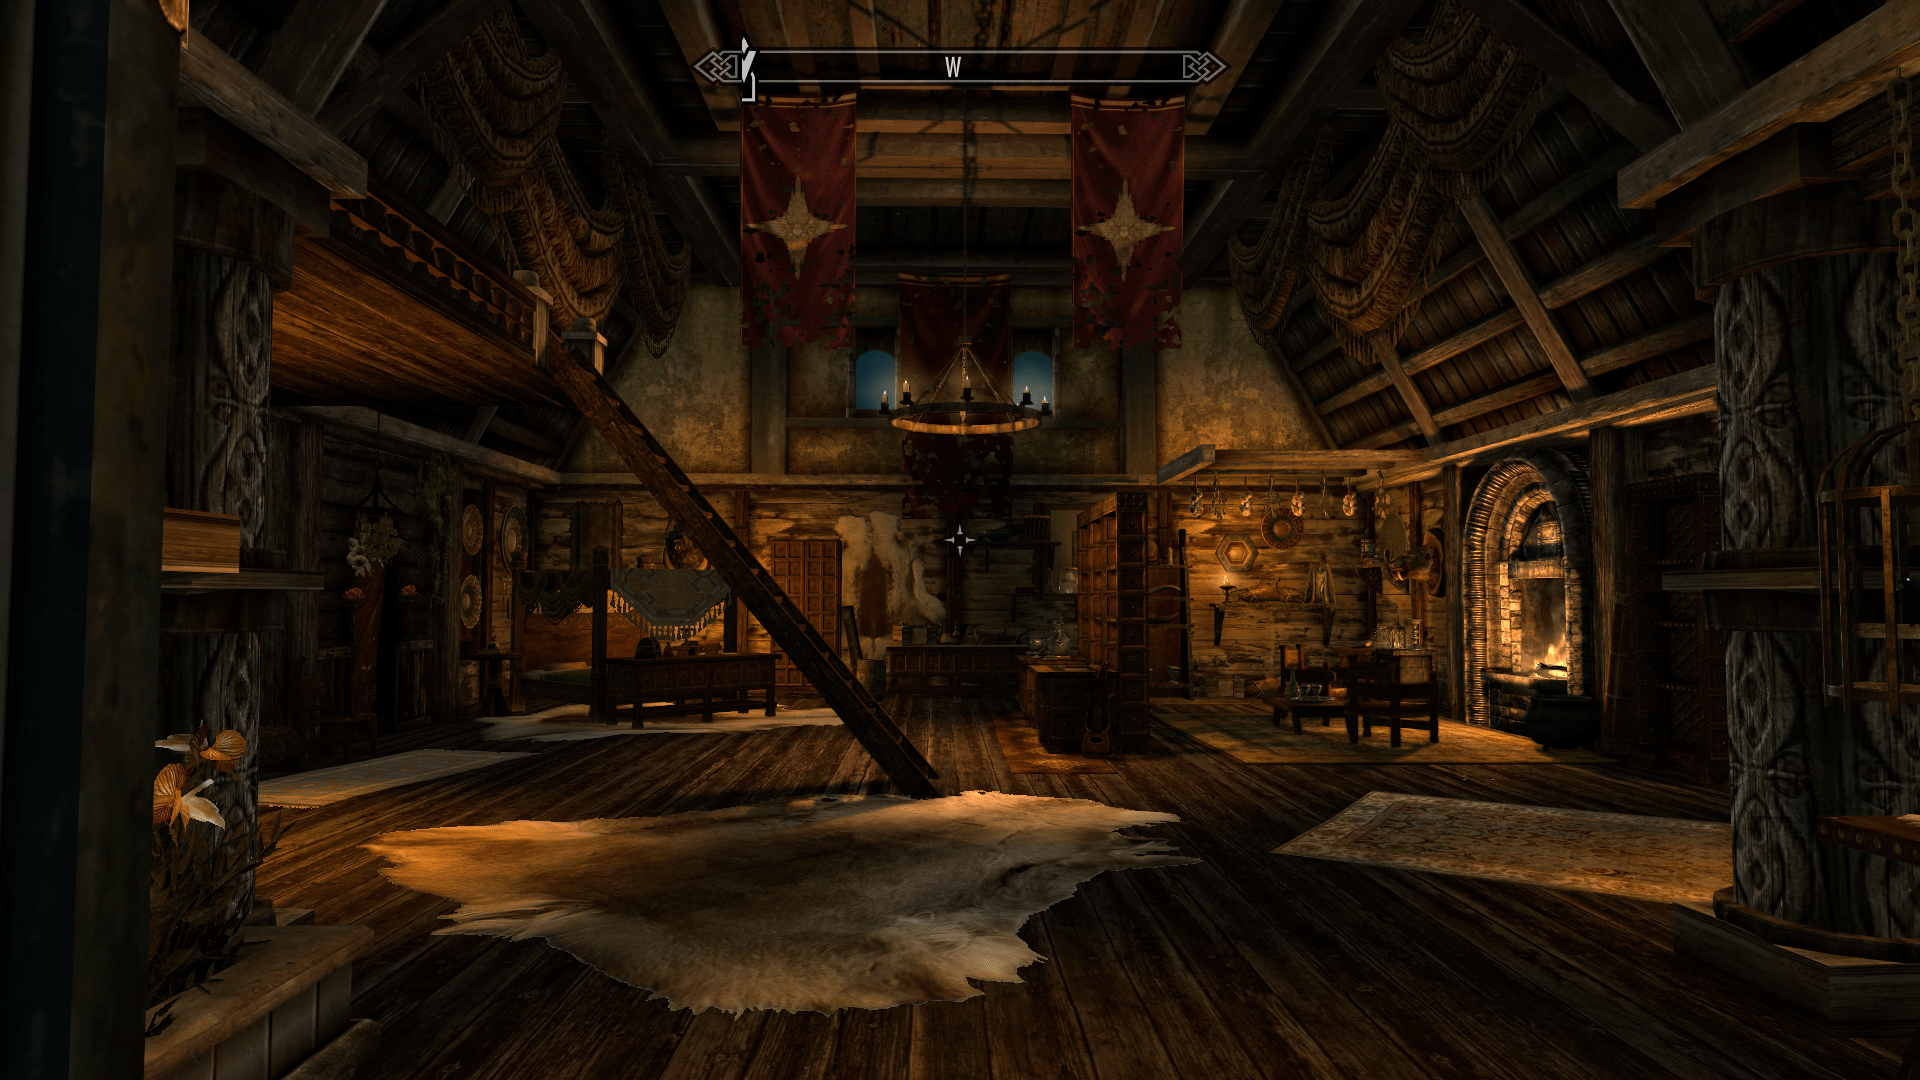 Lan S Picks For Some Of The Coolest Skyrim Housing Mods